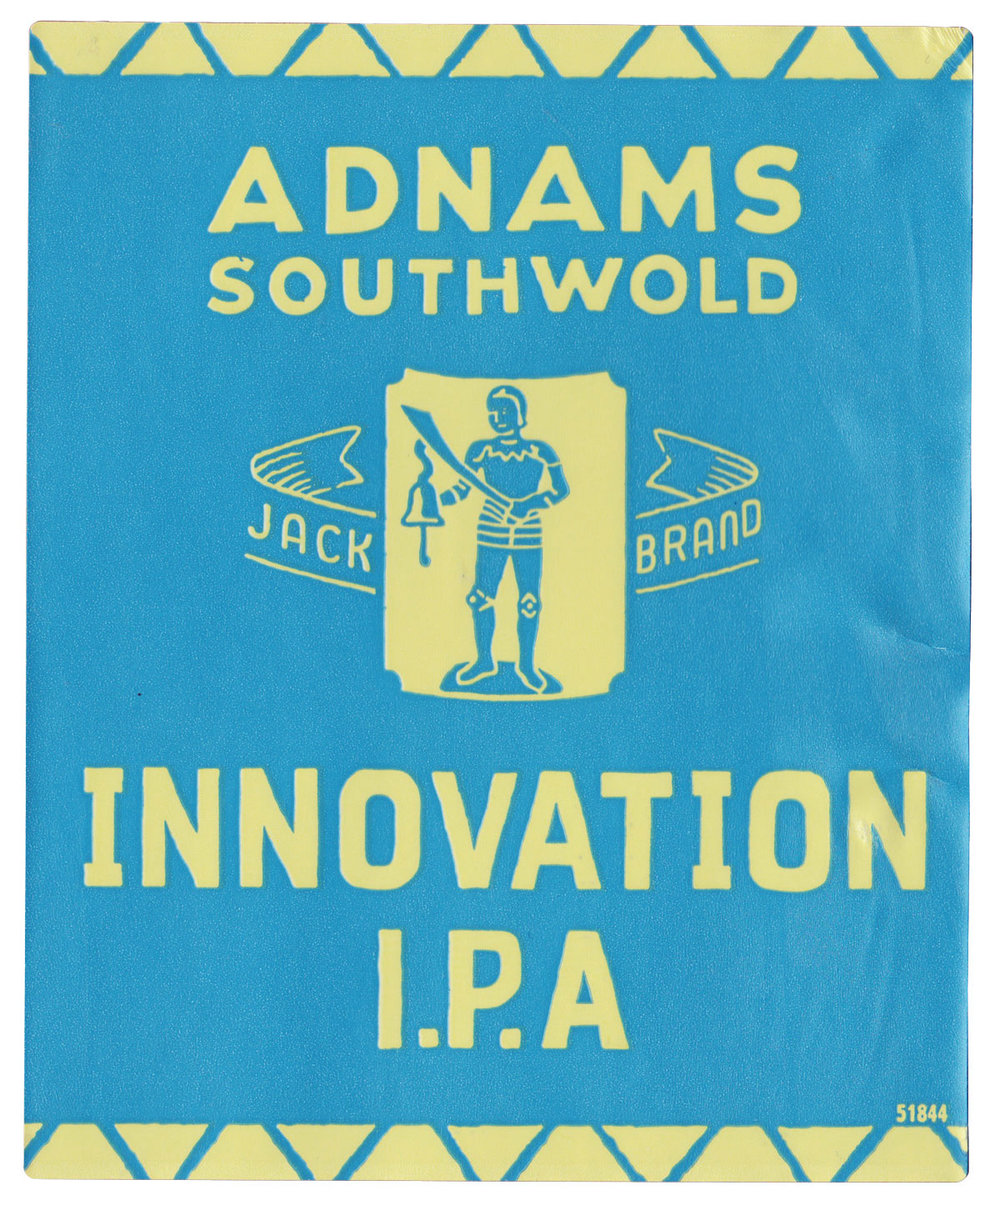 Adnams_InnovationIPA.jpg